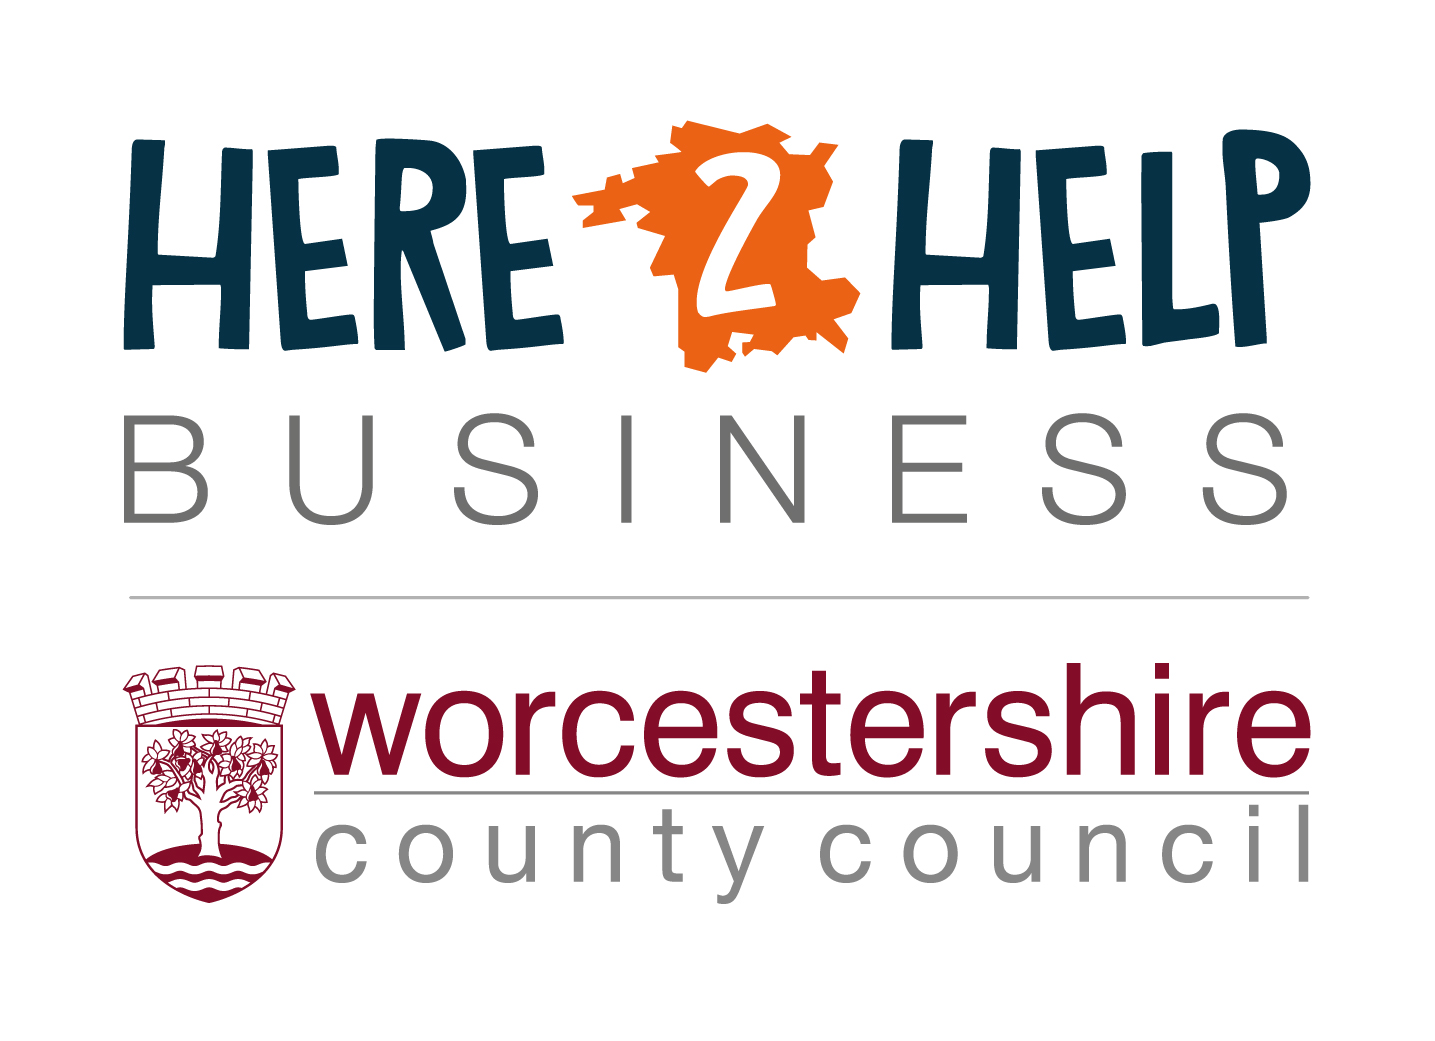 Here 2 Help Business and Worcestershire County Council logos